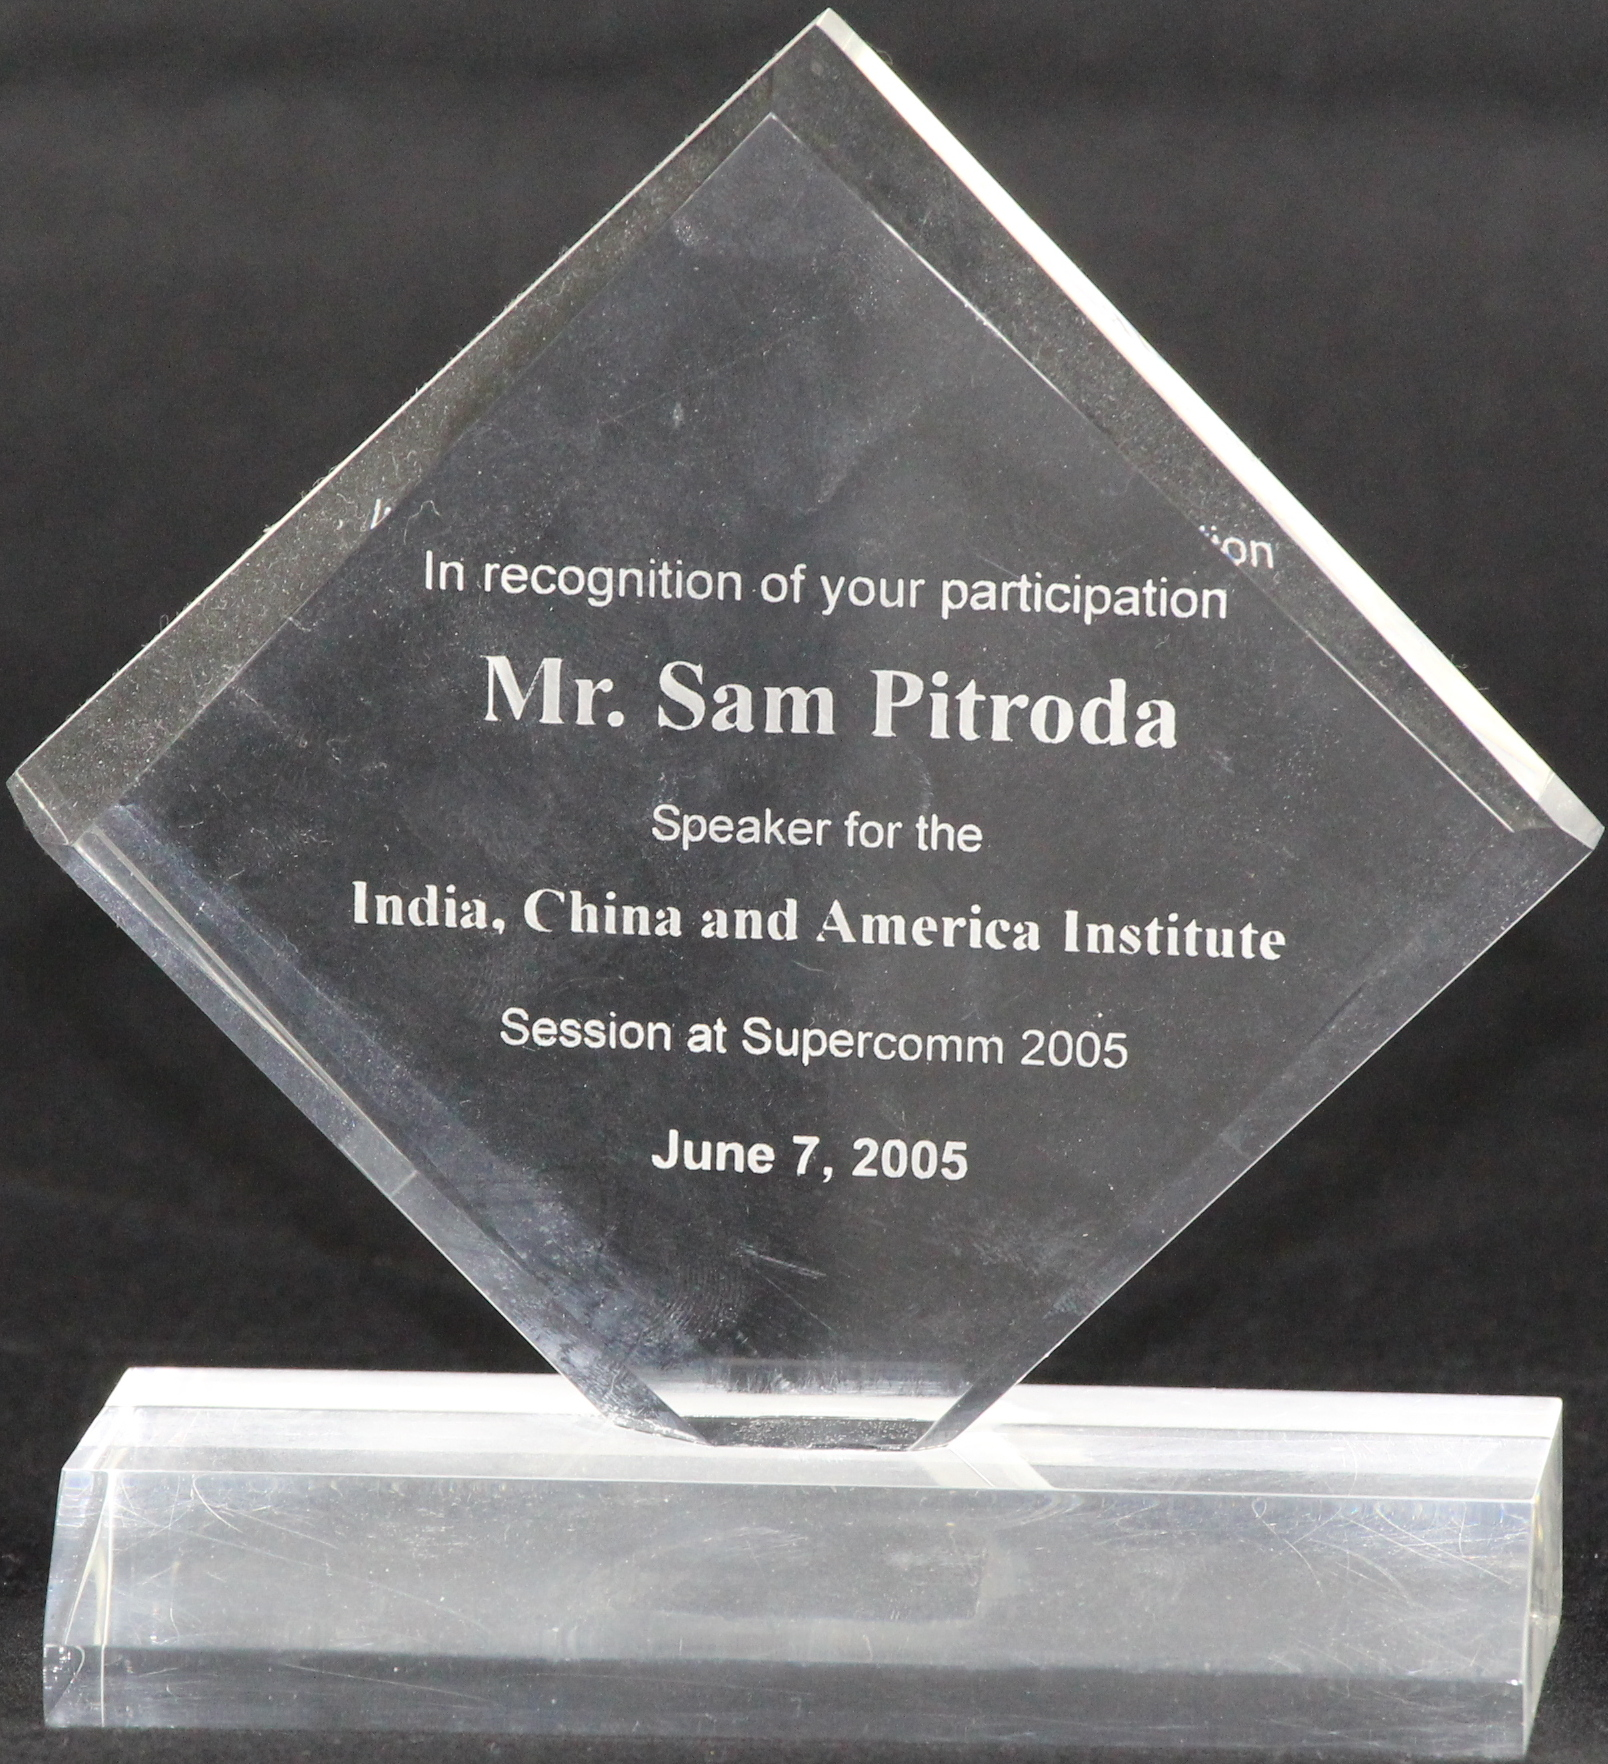 Speaker Award for the India, China, and America Institute Session at Supercomm, 2005